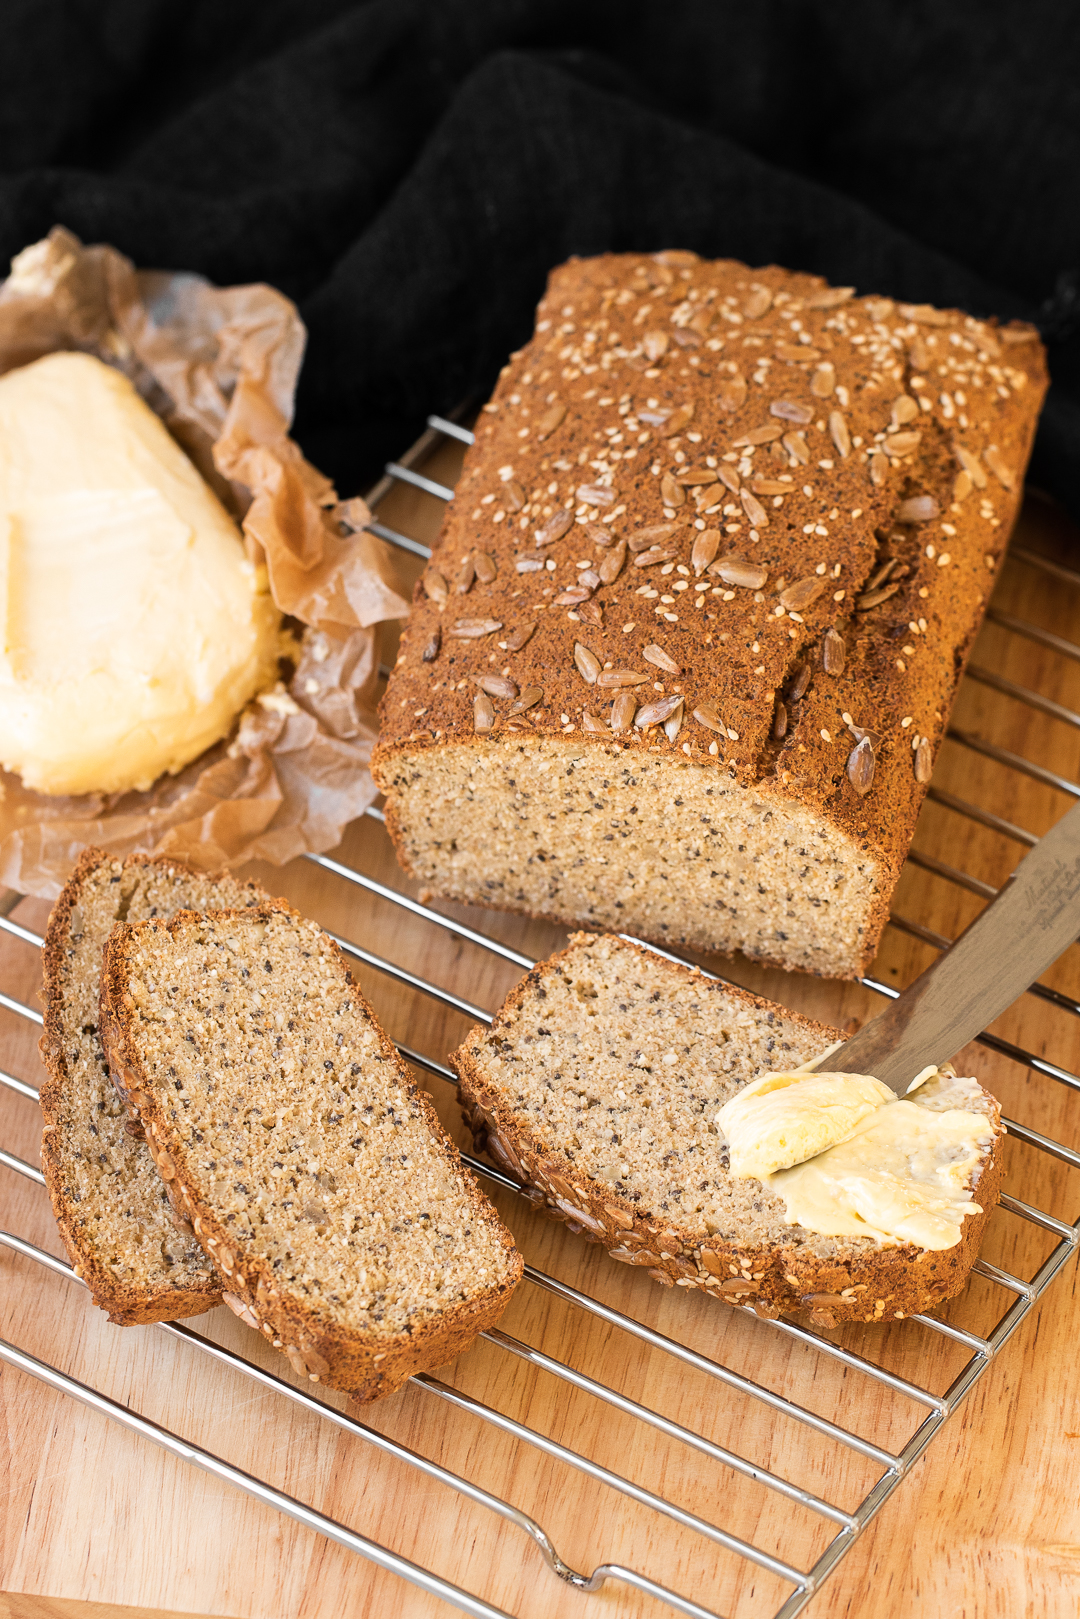 Low_Carb_Seedy_Gut_Loaf_by_Jordan_Pie_Nutritionist_Photographer-1.jpg